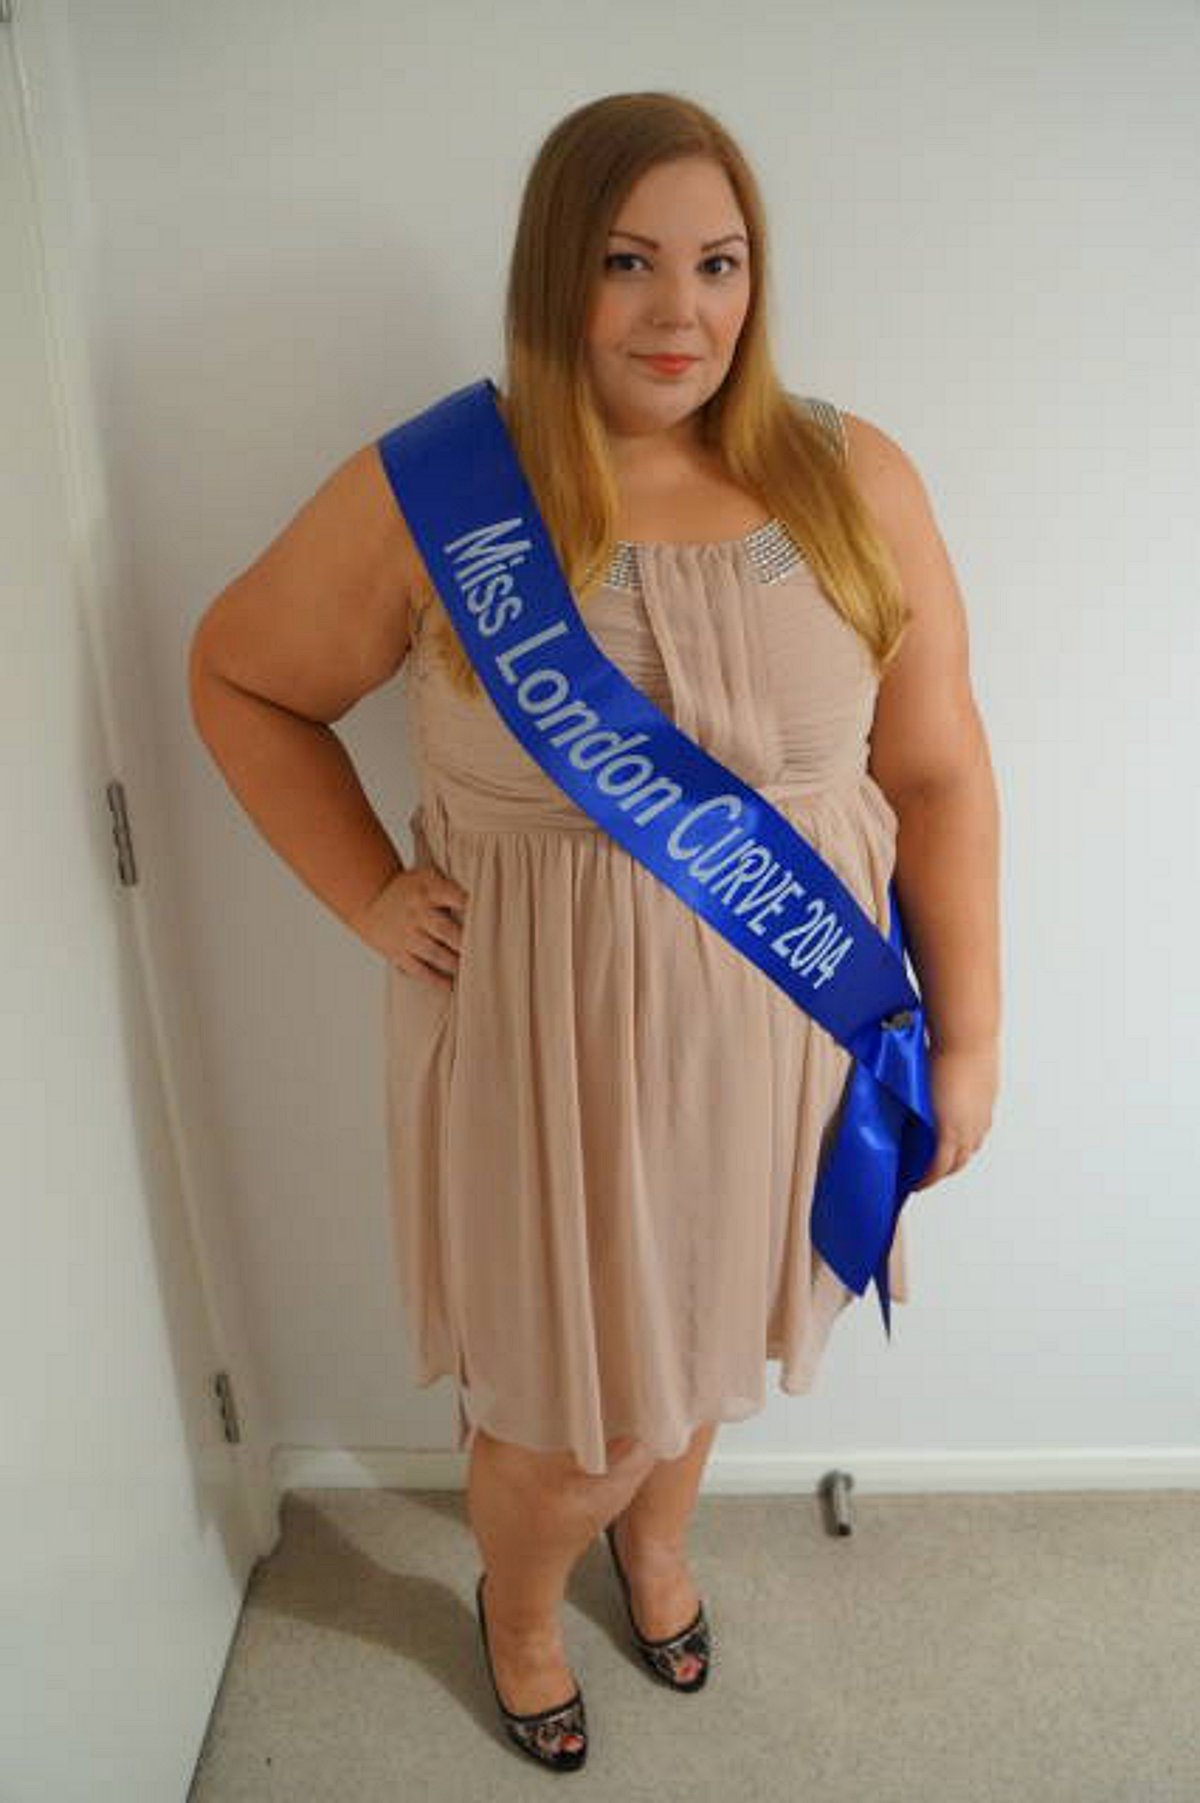 Plus-size Sydenham beauty queen bids for Miss British Beauty Curve crown